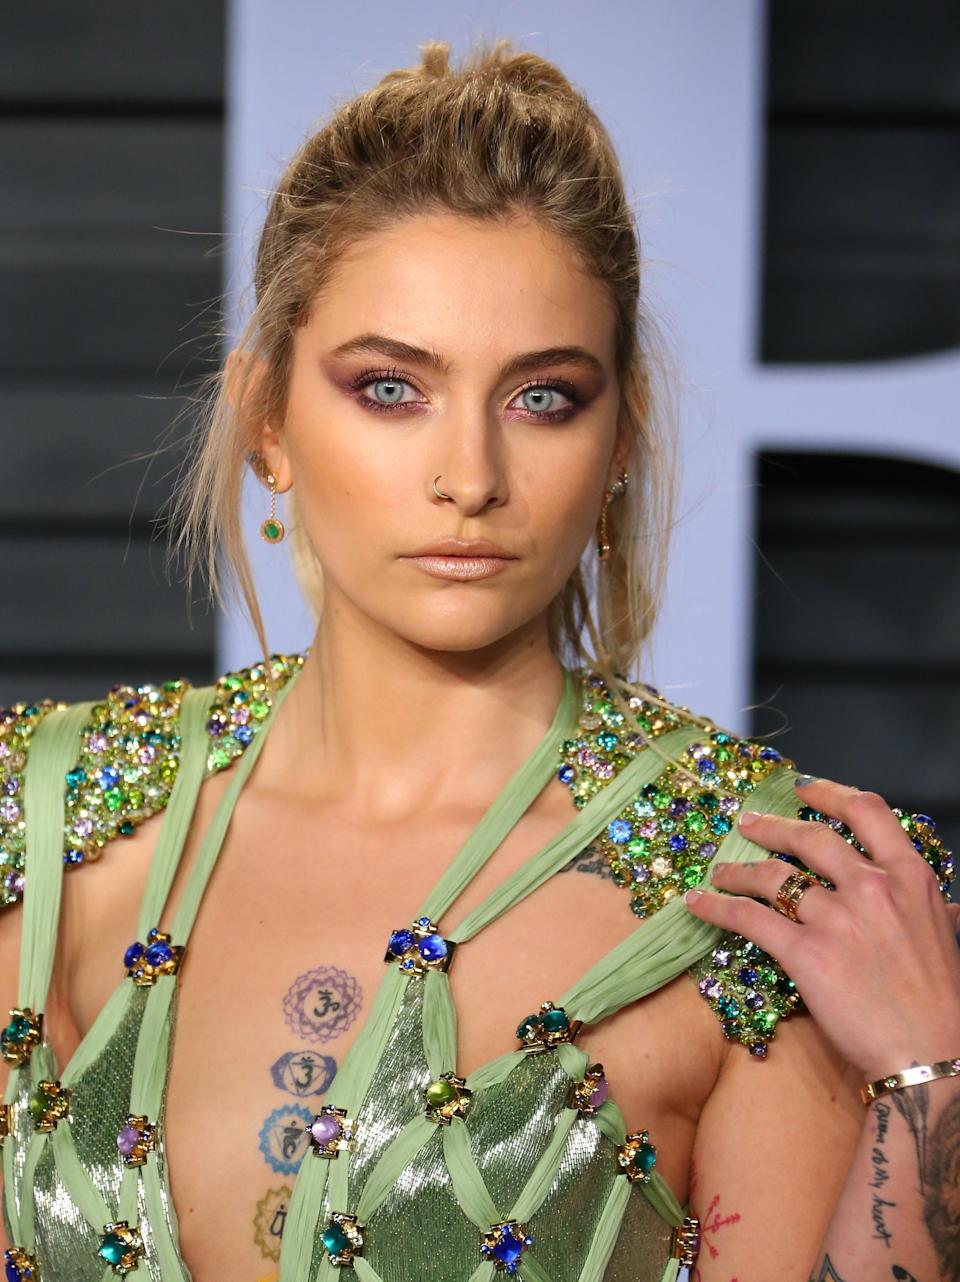 Paris Jackson, pictured at the 2018 Oscars, is defending her pot use. (Photo: JEAN-BAPTISTE LACROIX/AFP/Getty Images)